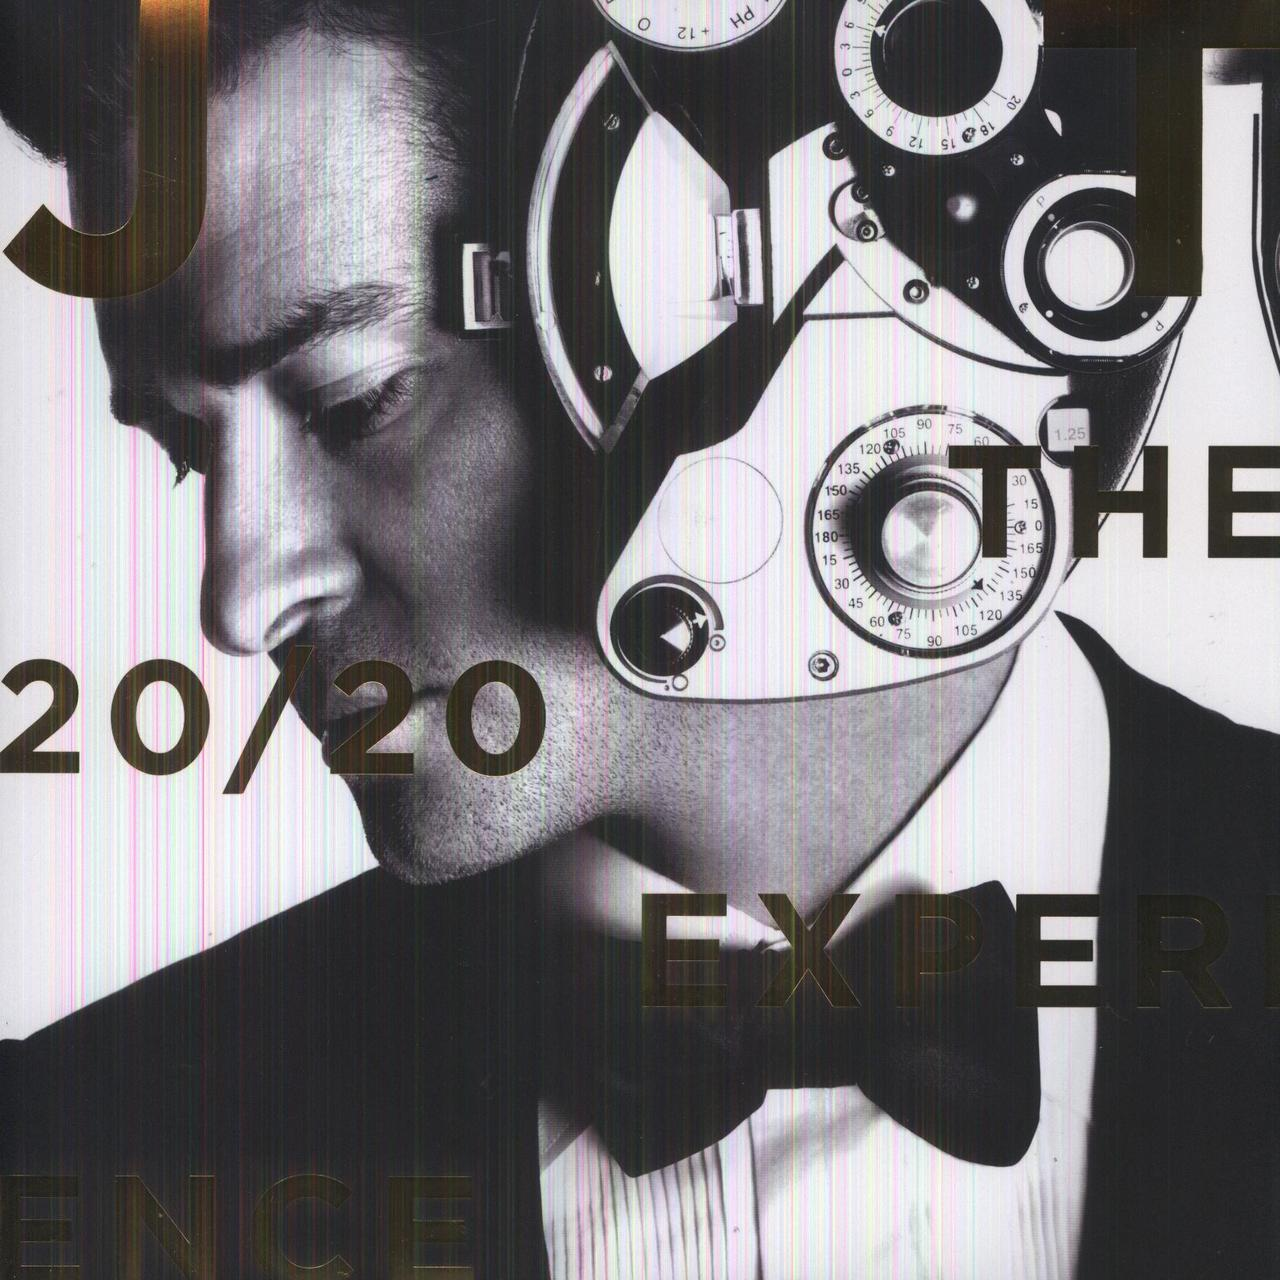 Justin Timberlake Releases Track List and Cover Art for